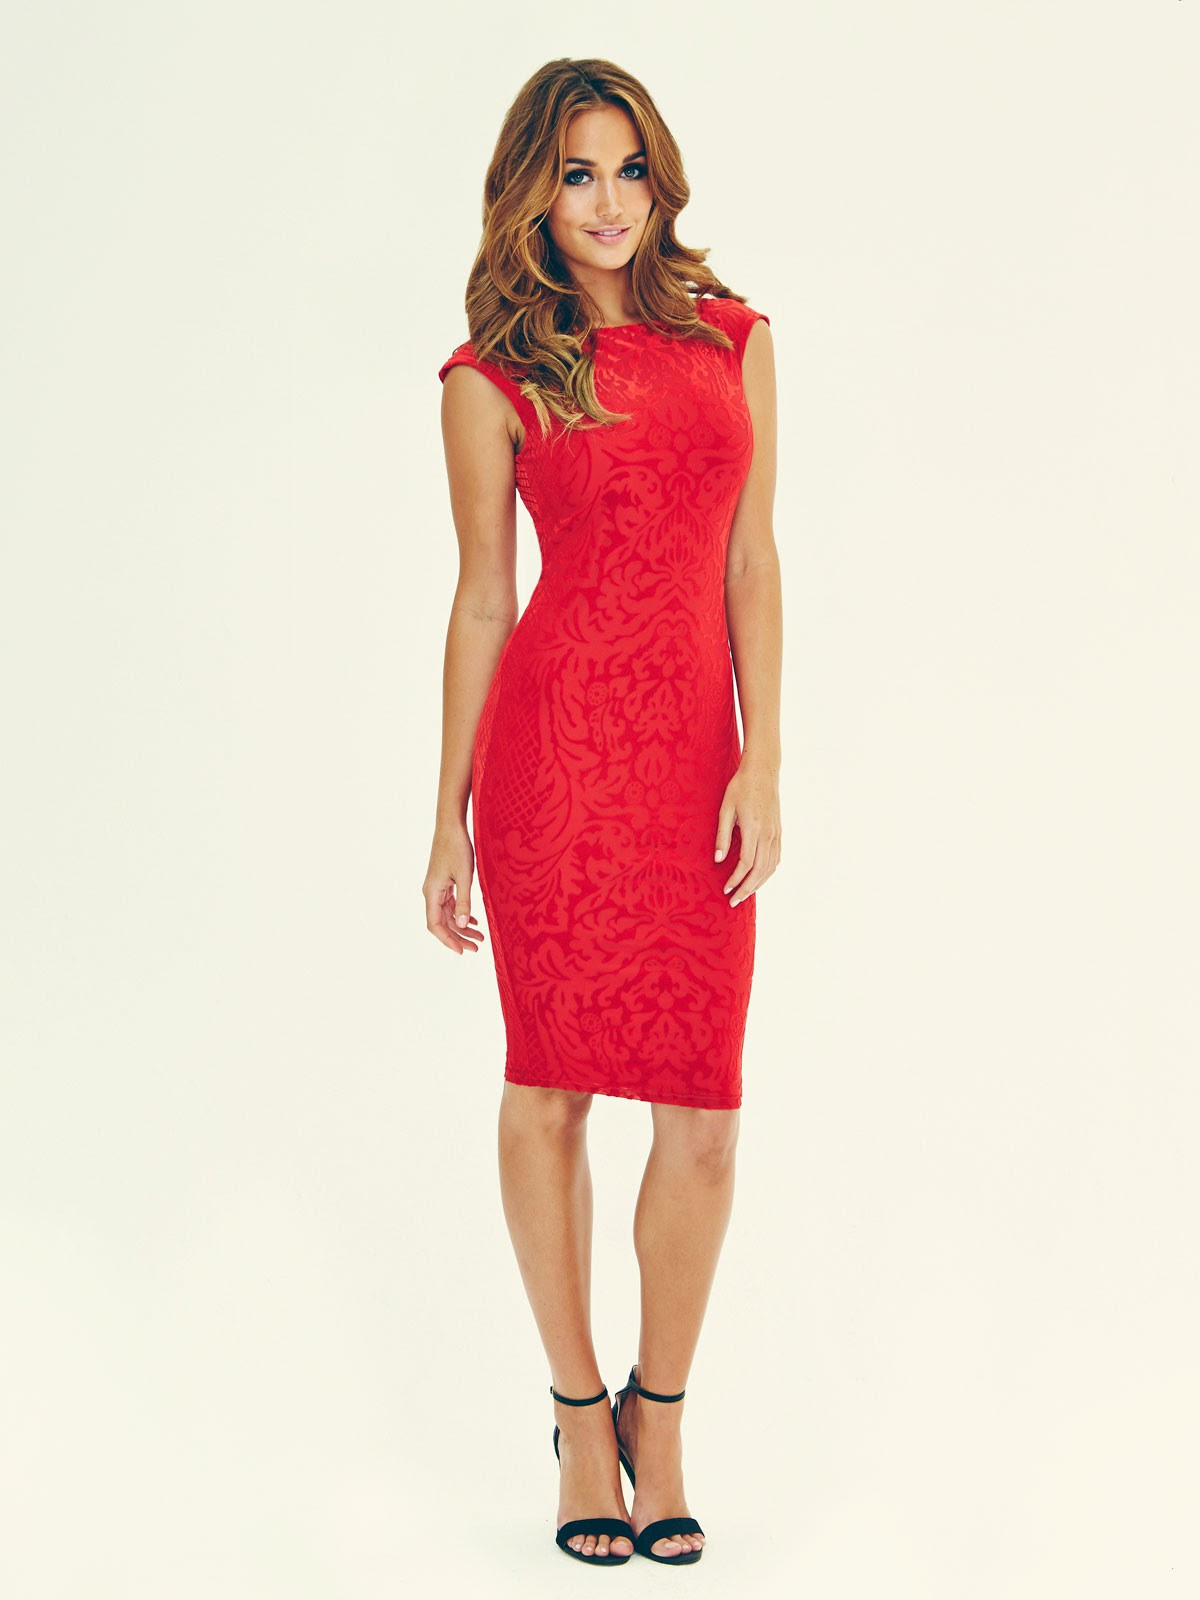 Georgetown bodycon dress for skinny girl up images nye